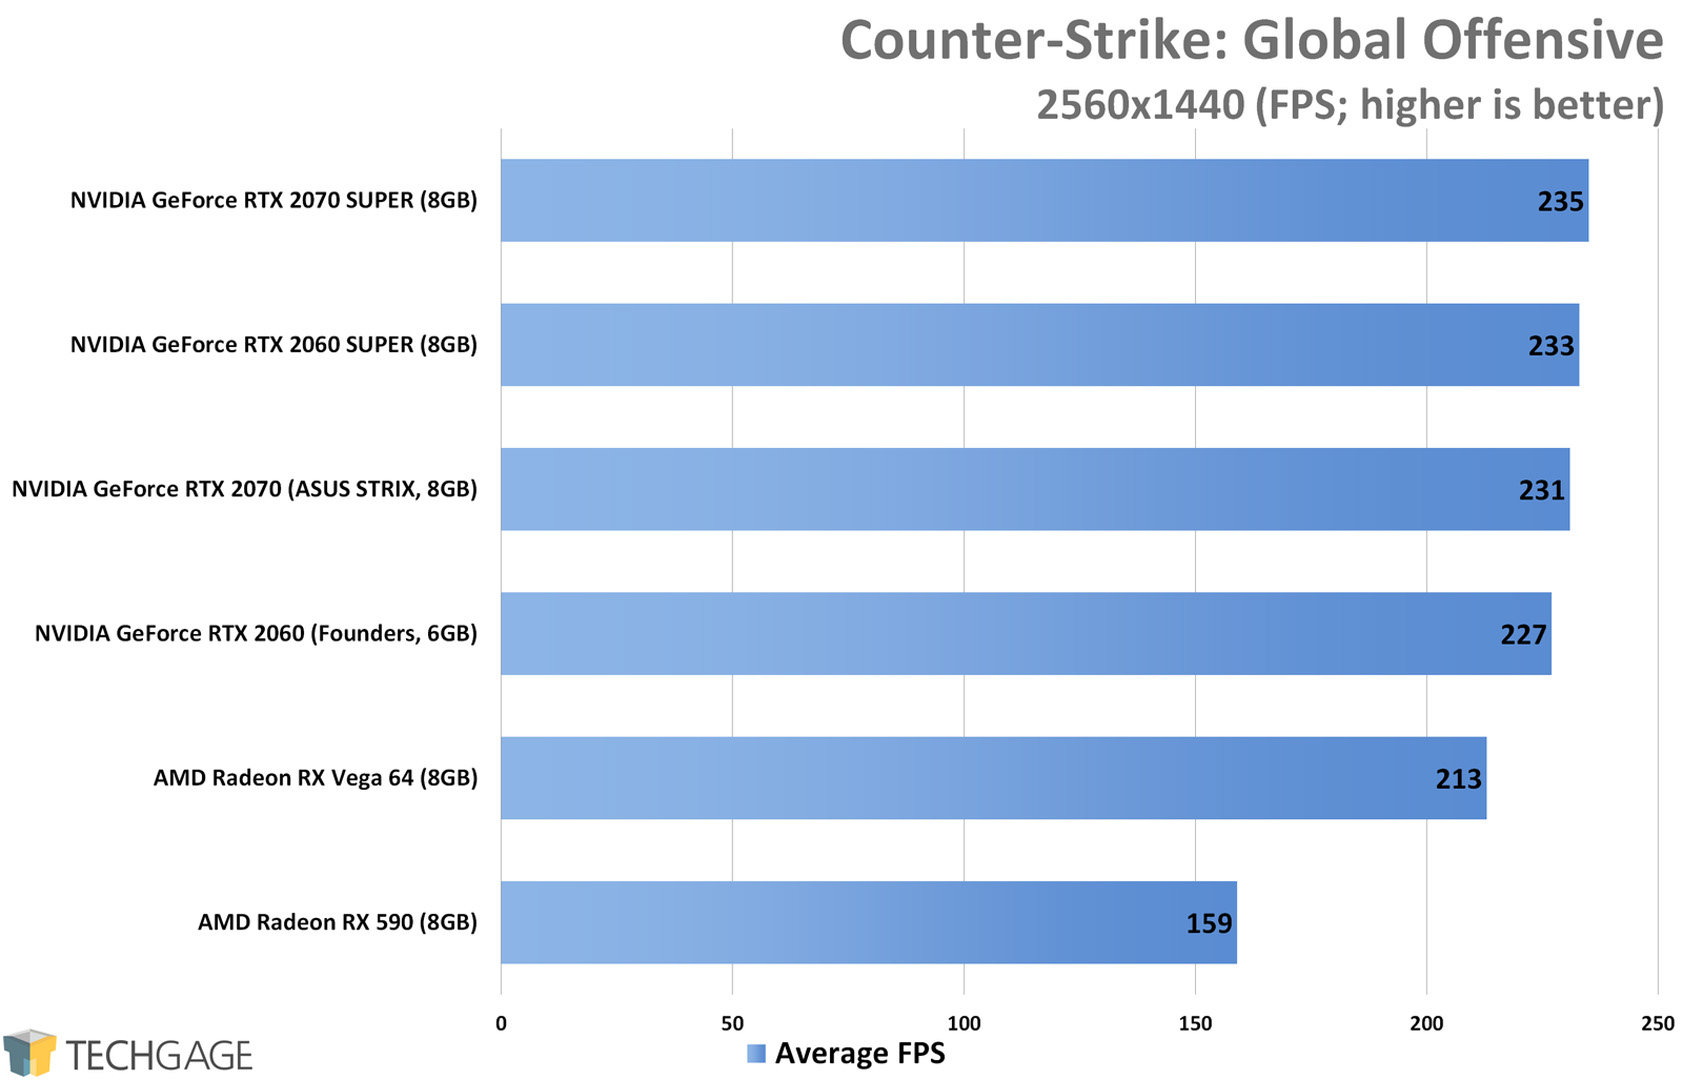 Counter-Strike Global Offensive (1440p) - NVIDIA RTX SUPER 2060 and 2070 Performance